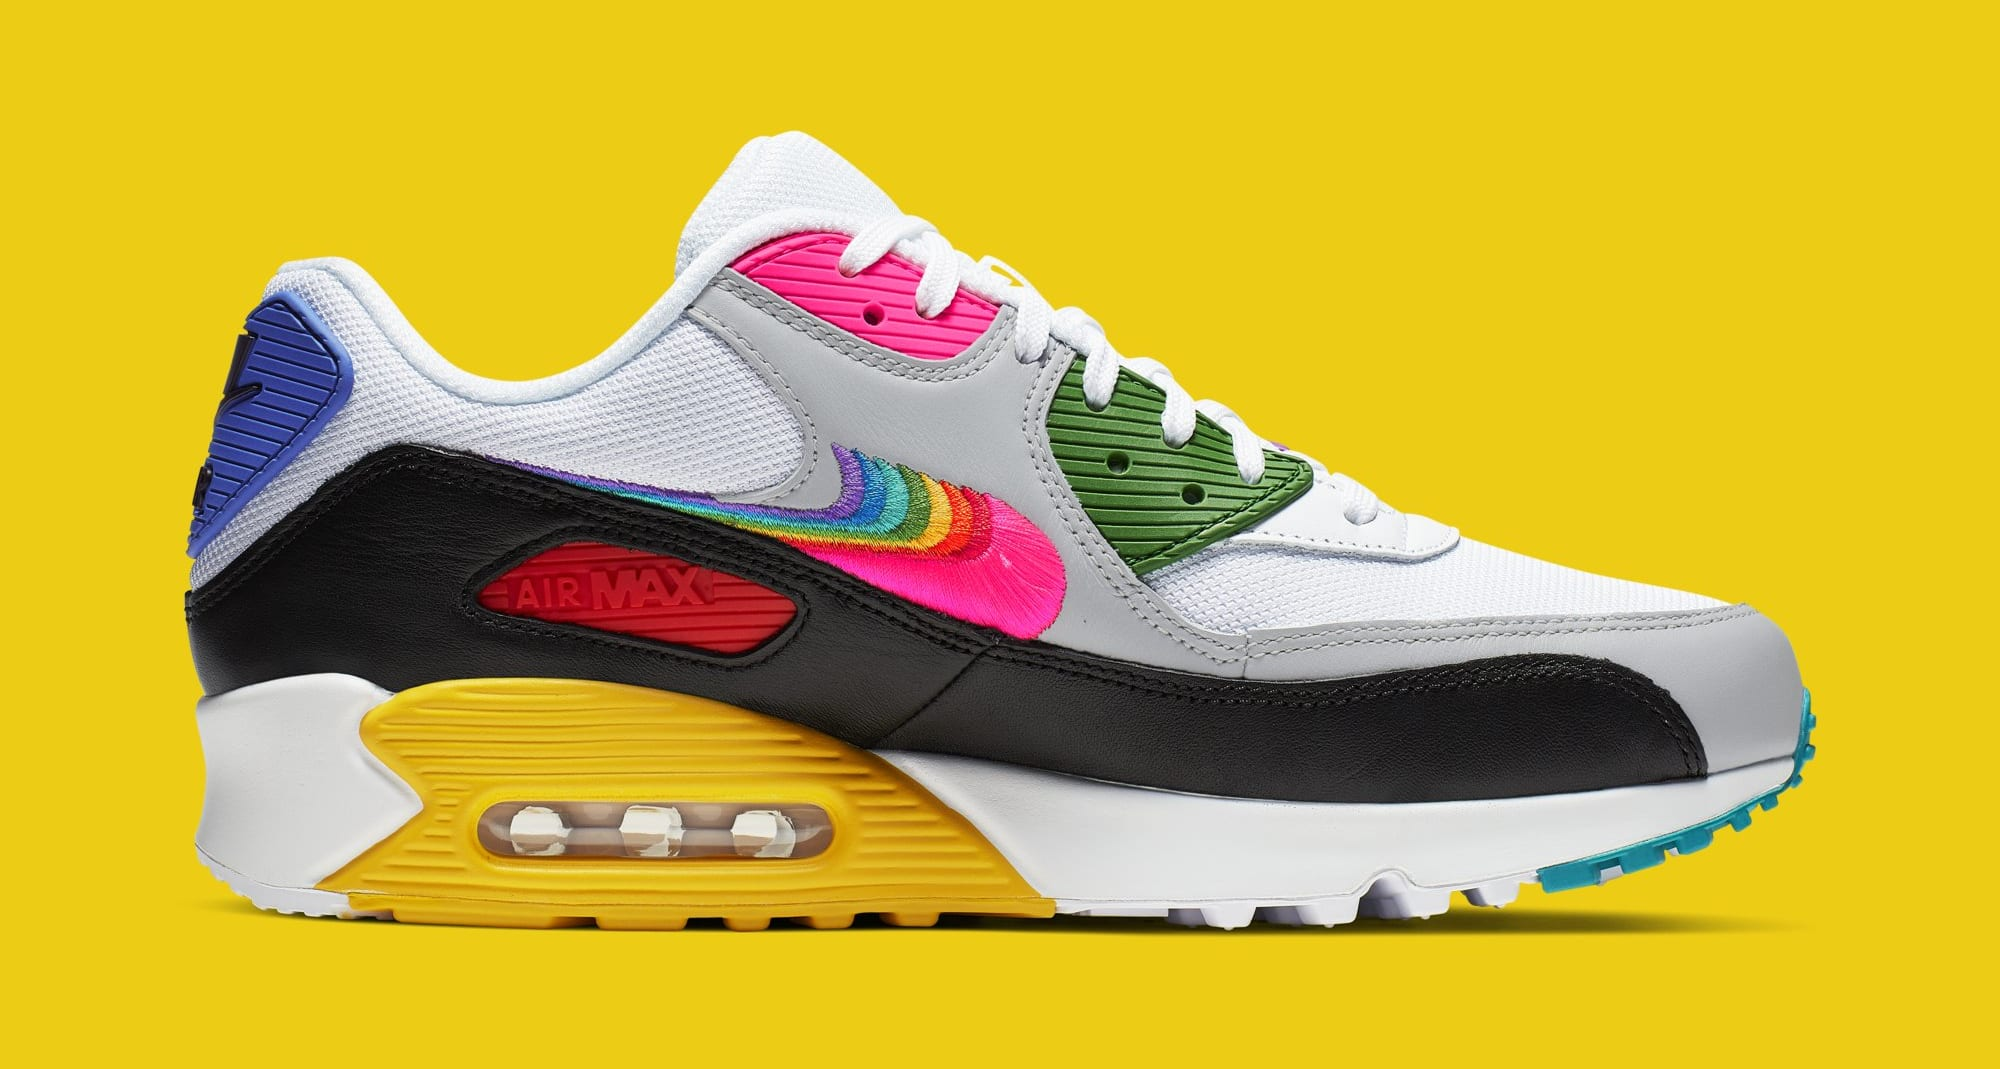 Nike Air Max 90 'Be True' CJ5482-100 (Medial)